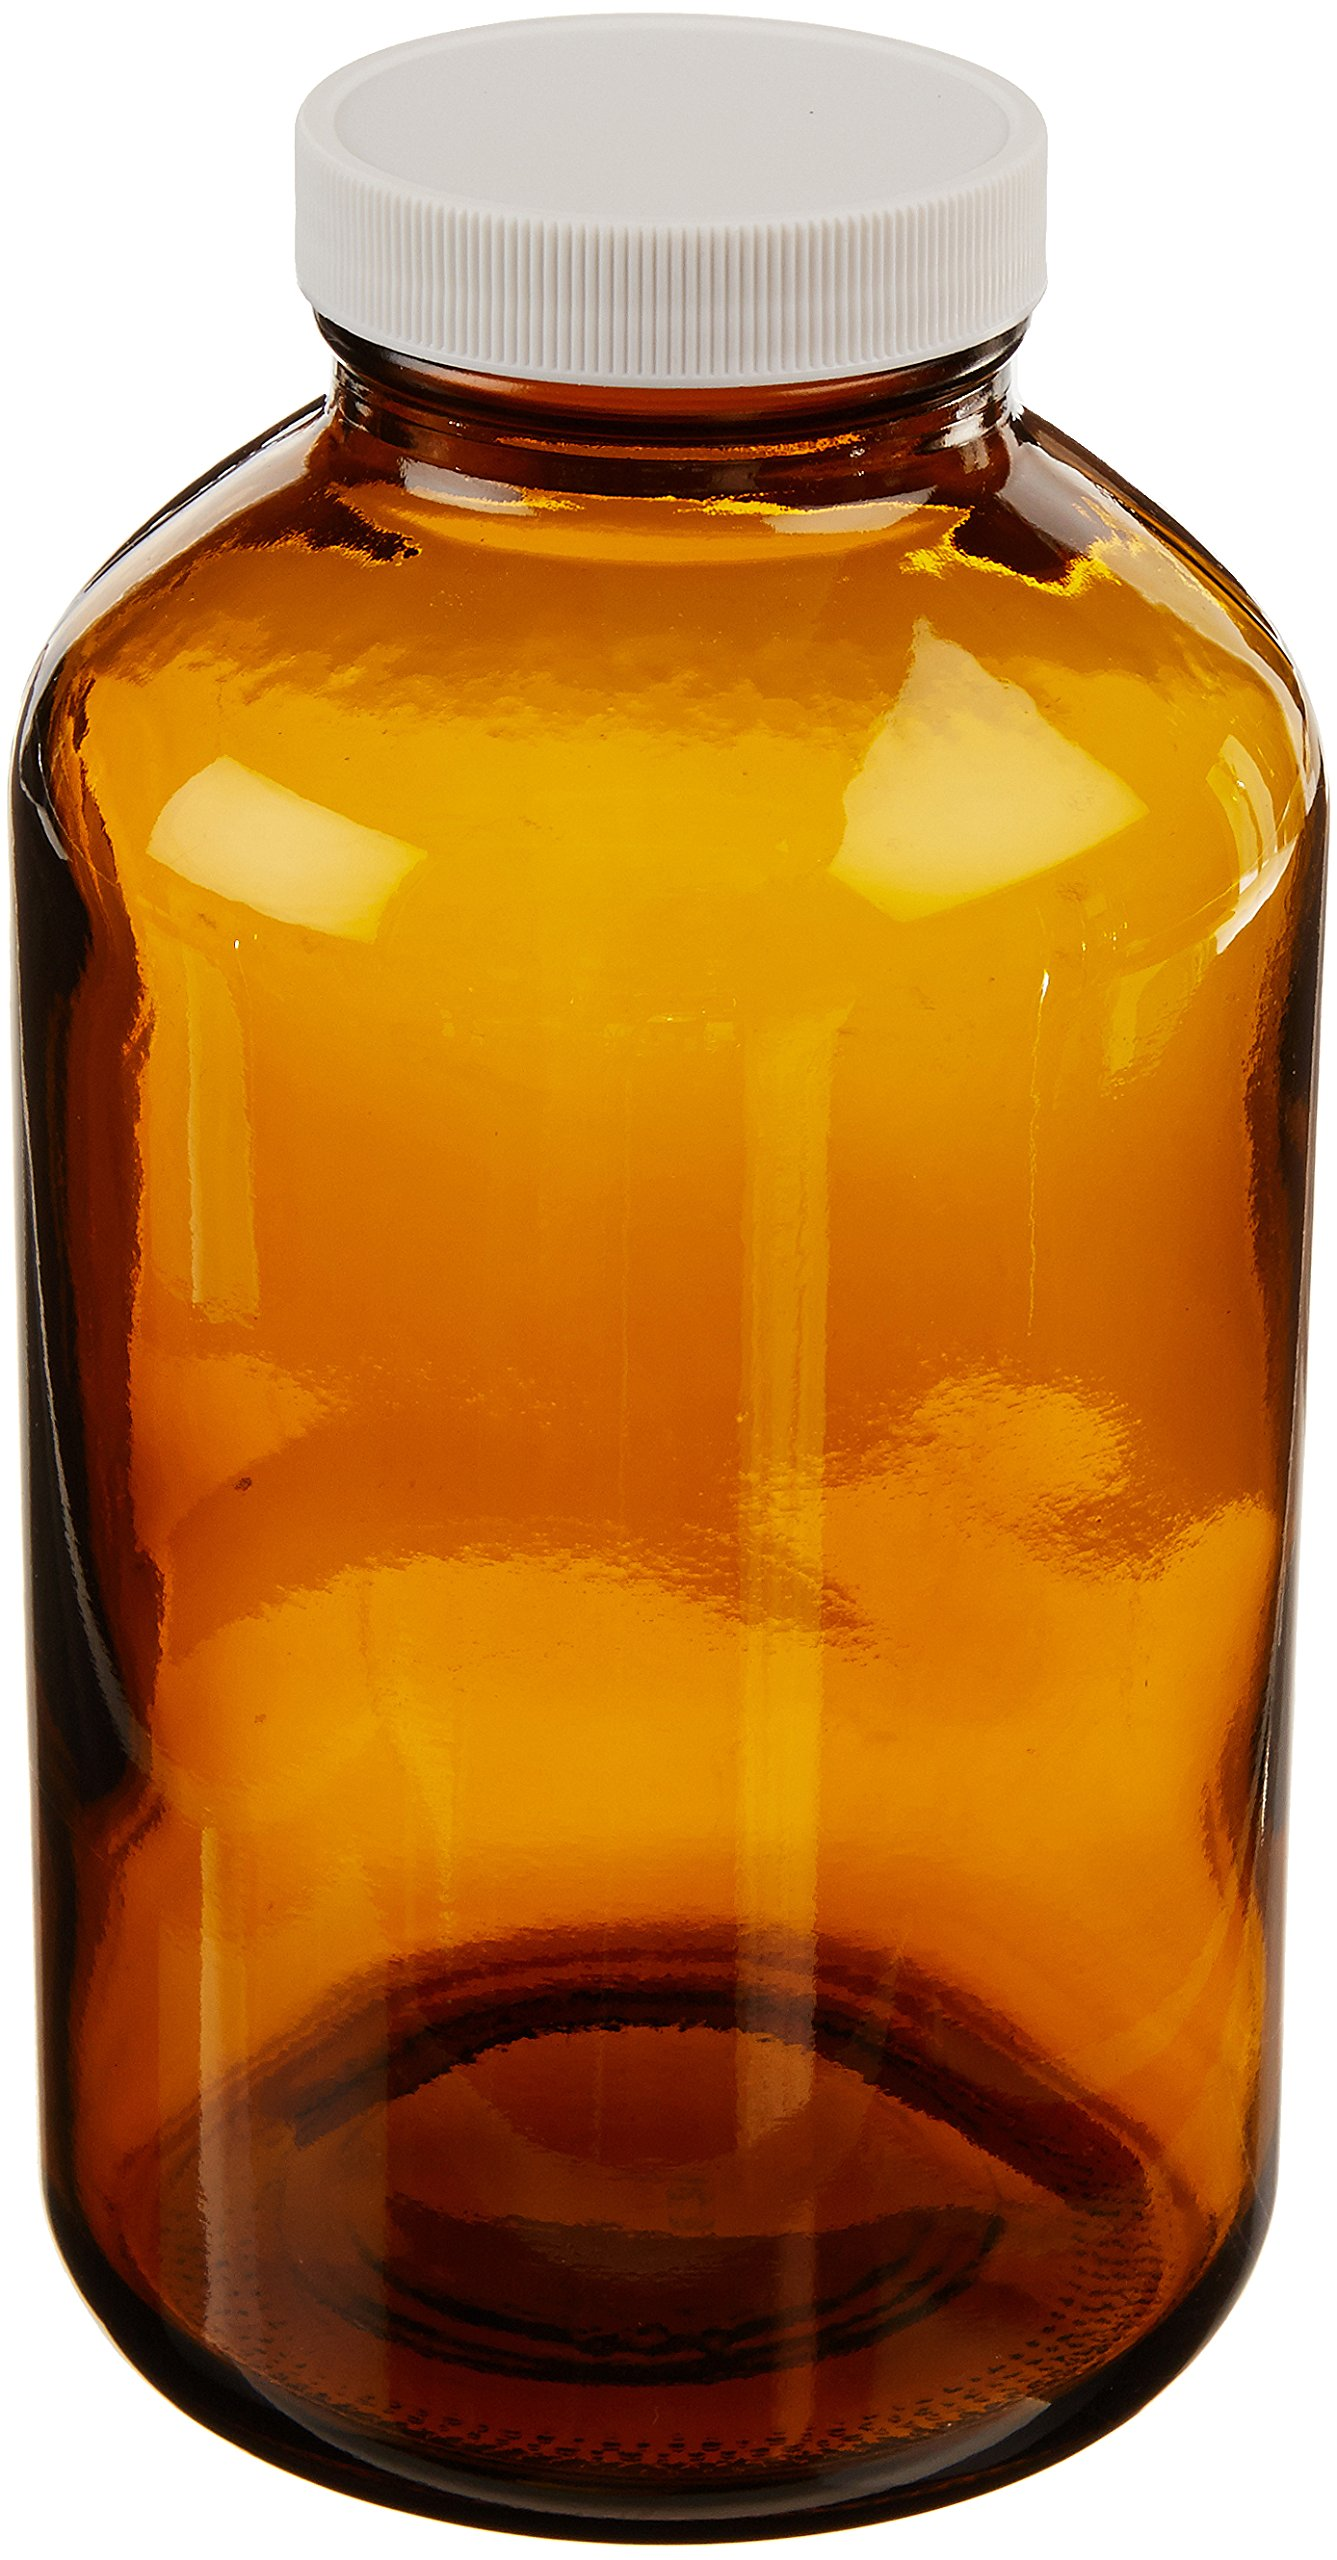 JG Finneran 9-225 Amber Borosilicate Glass Standard Wide Mouth Packer with White Polypropylene Closure and 0.015'' PTFE Lined, 53-400mm Cap Size, 32oz Capacity (Pack of 12)